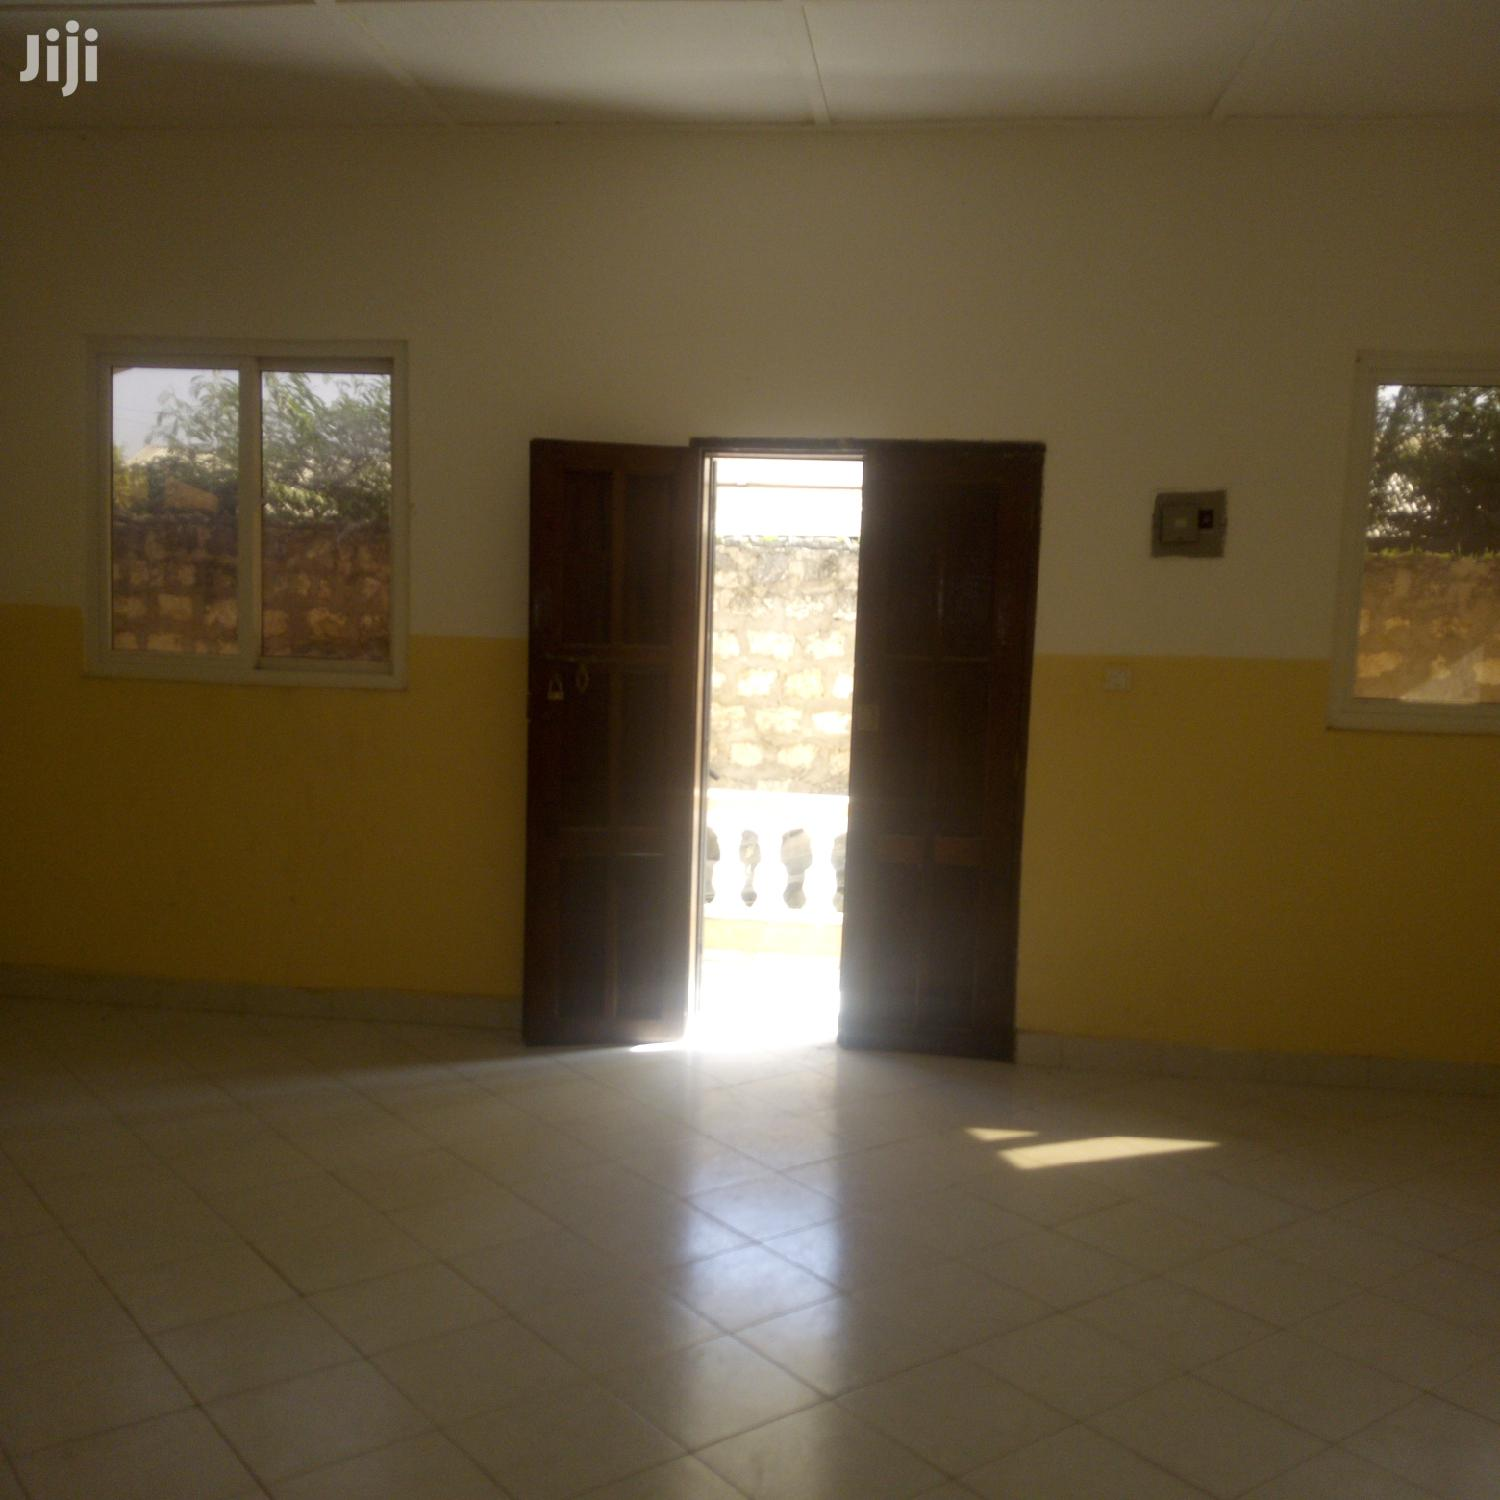 Own Compound 3bedroom for Sale   Houses & Apartments For Sale for sale in Malindi Town, Kilifi, Kenya